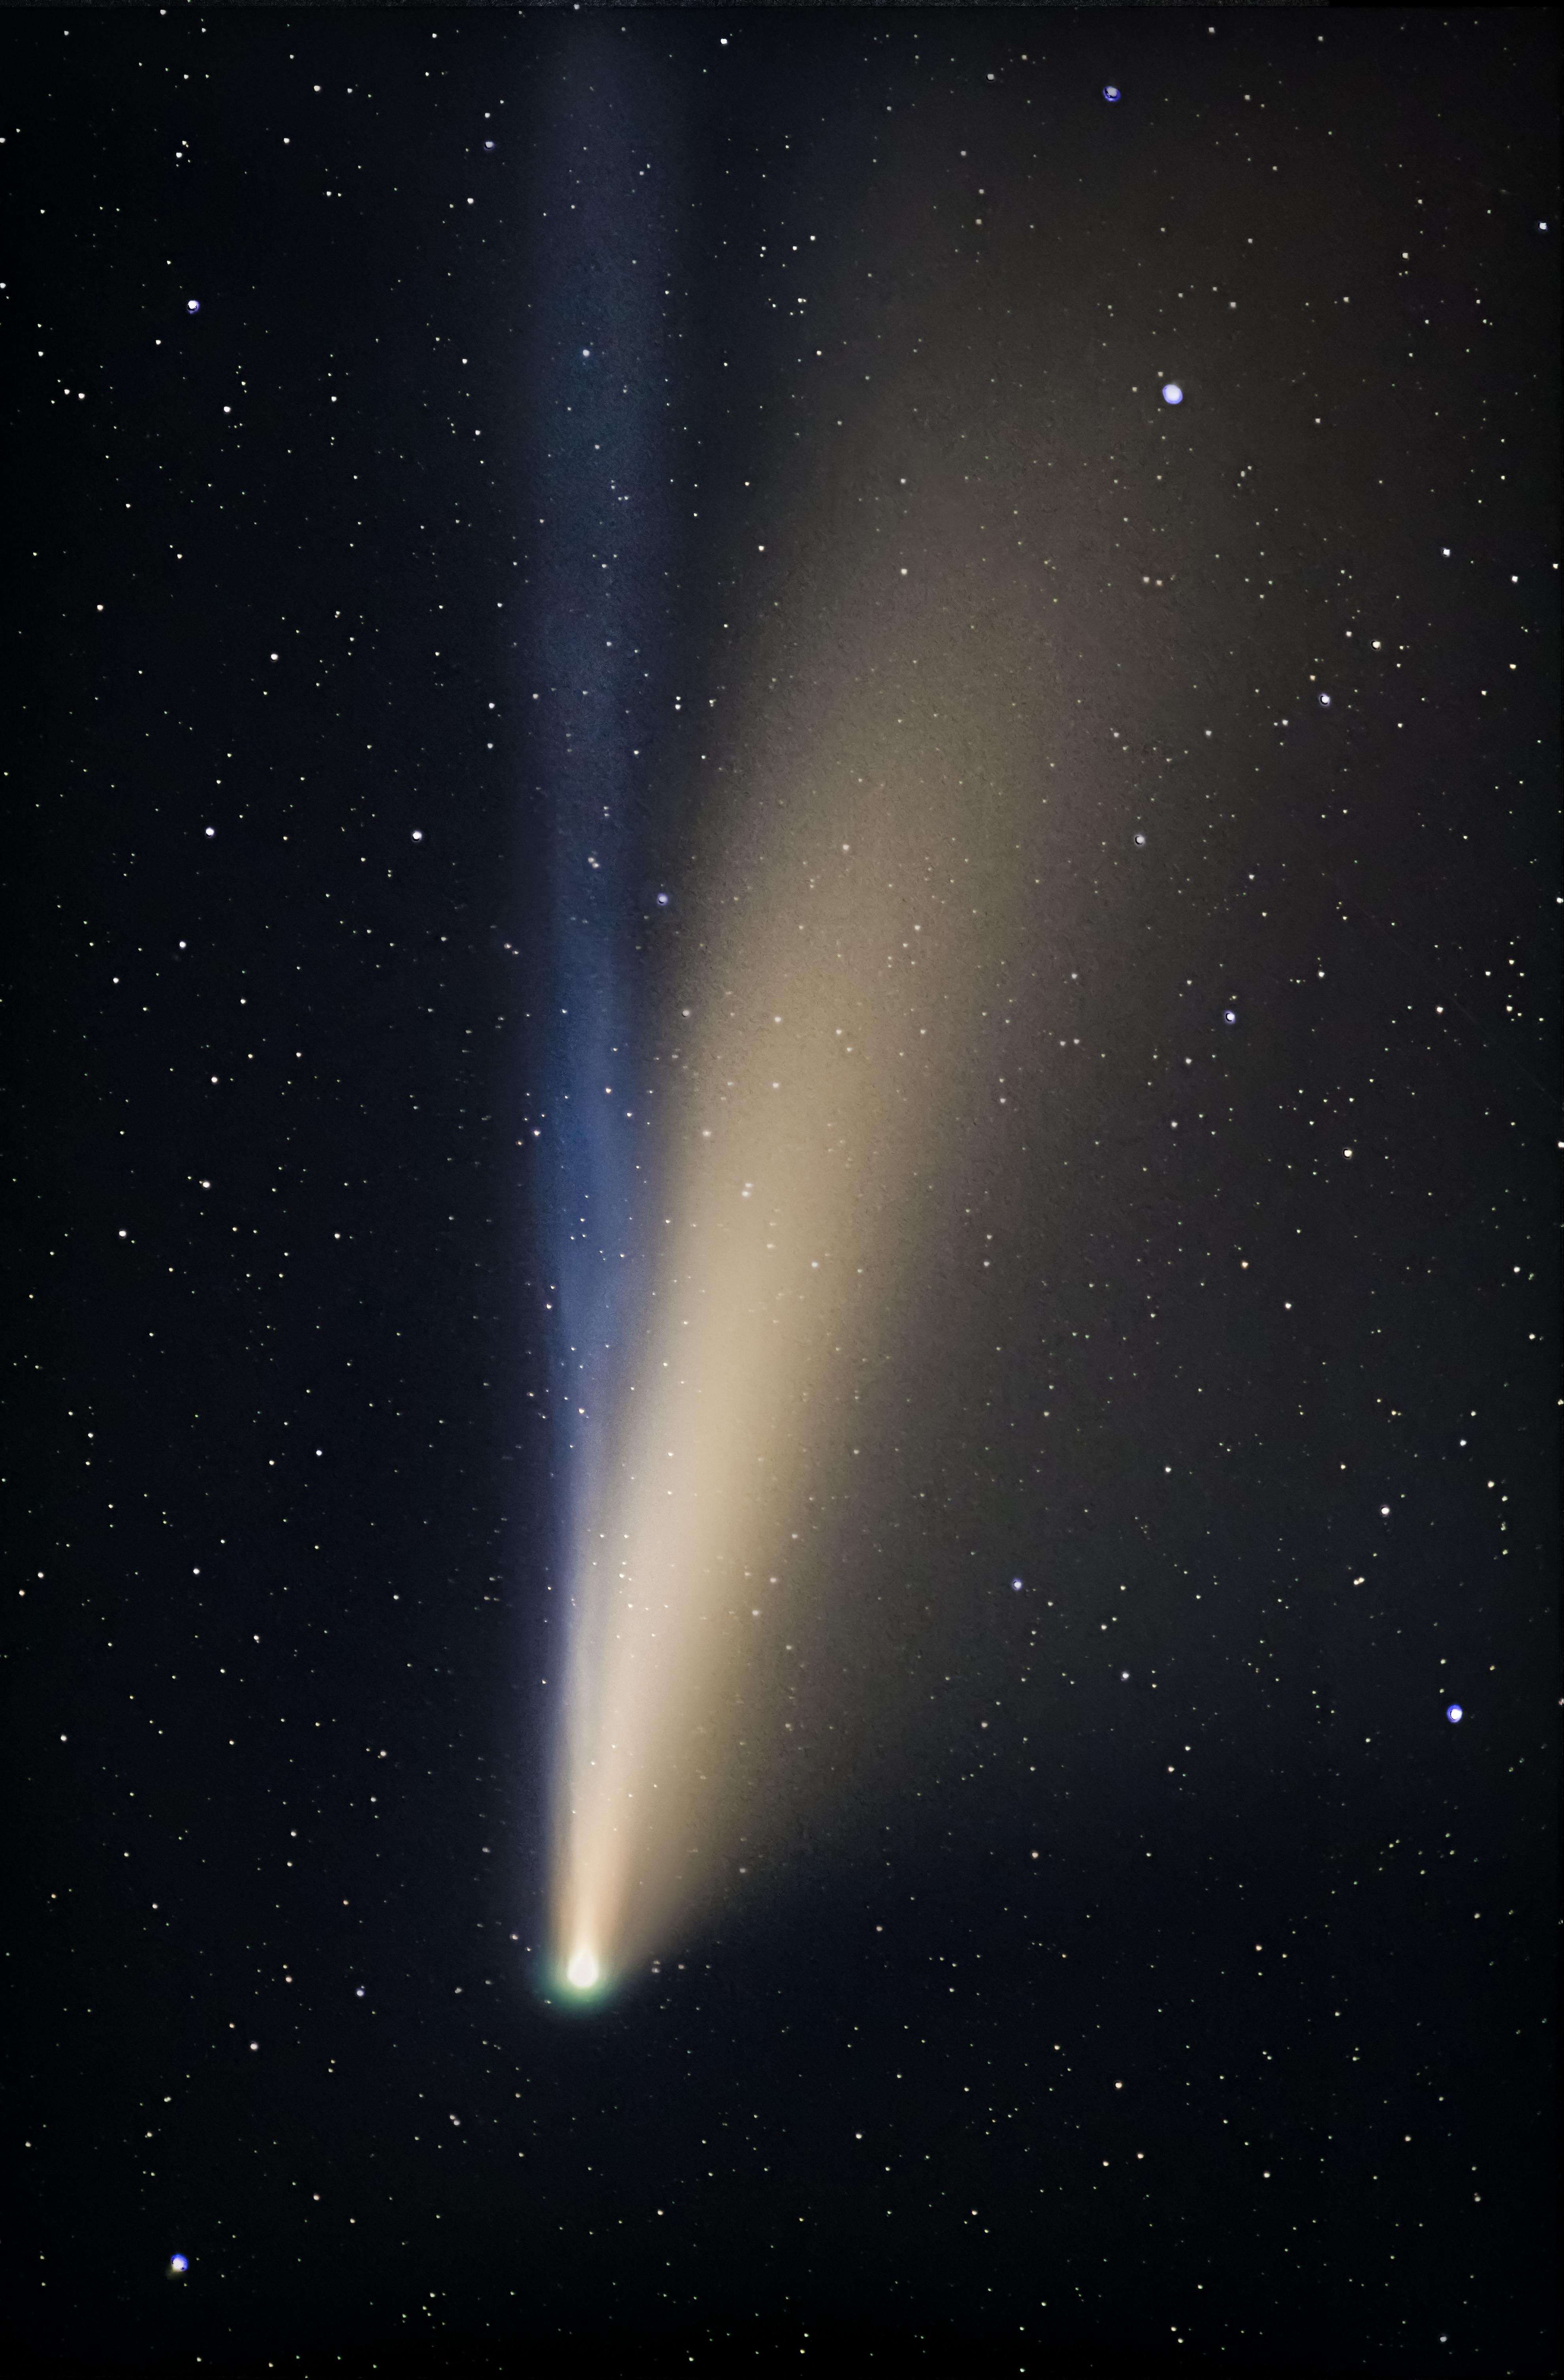 My shot of Comet Neowise from July